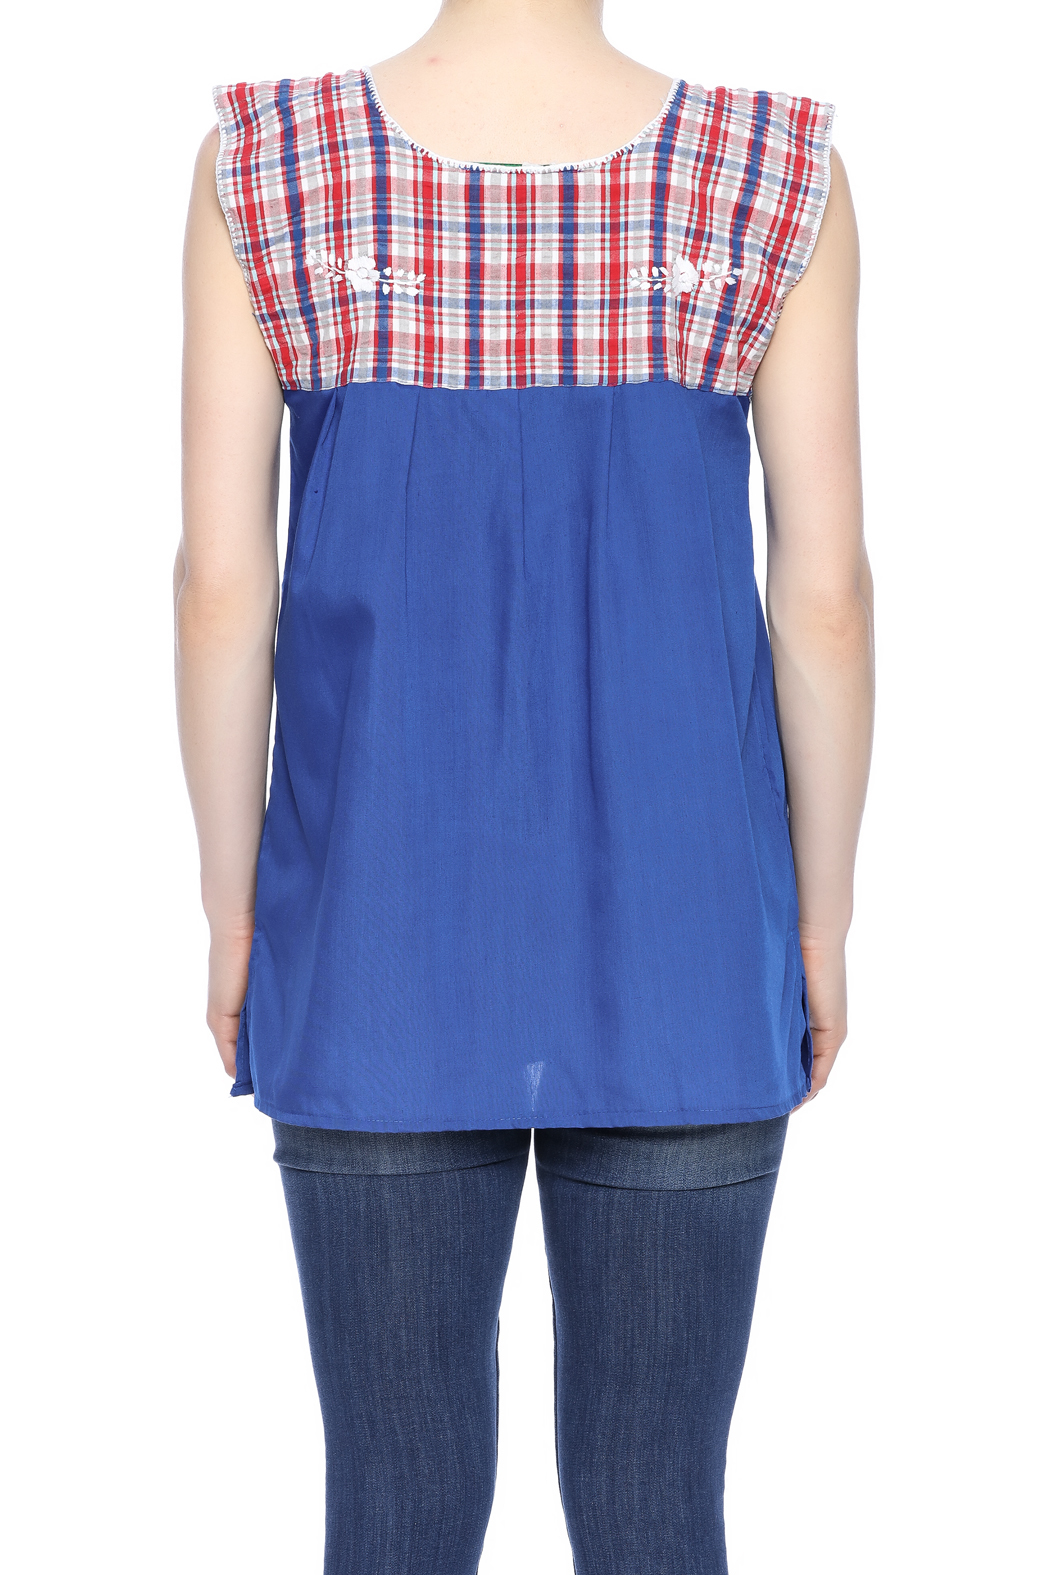 Nativa Embroidered Plaid Blouse - Back Cropped Image